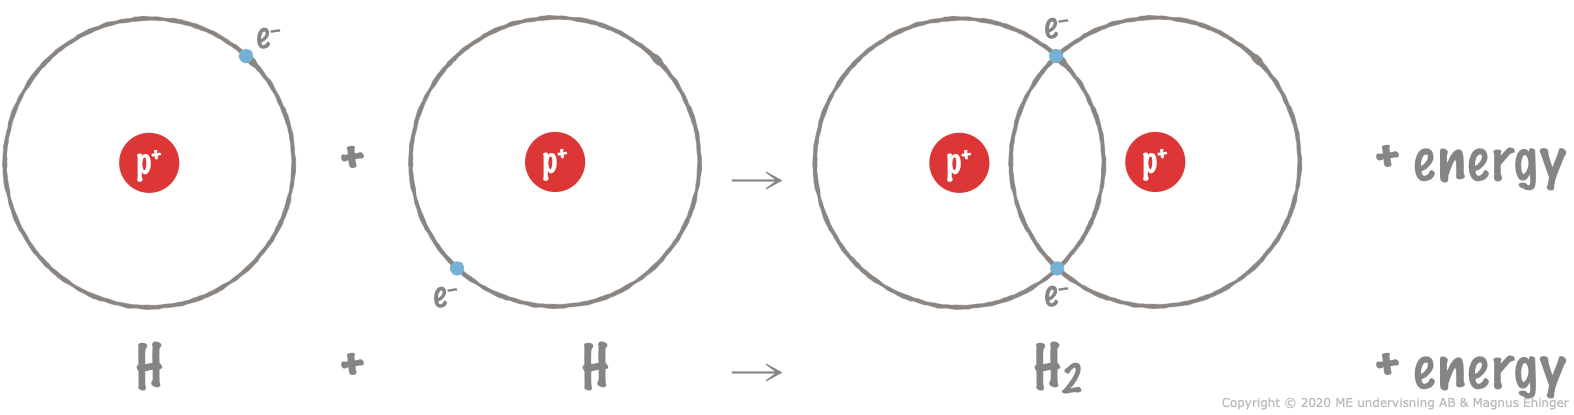 How a hydrogen molecule forms. Energy is always released when bonds form.